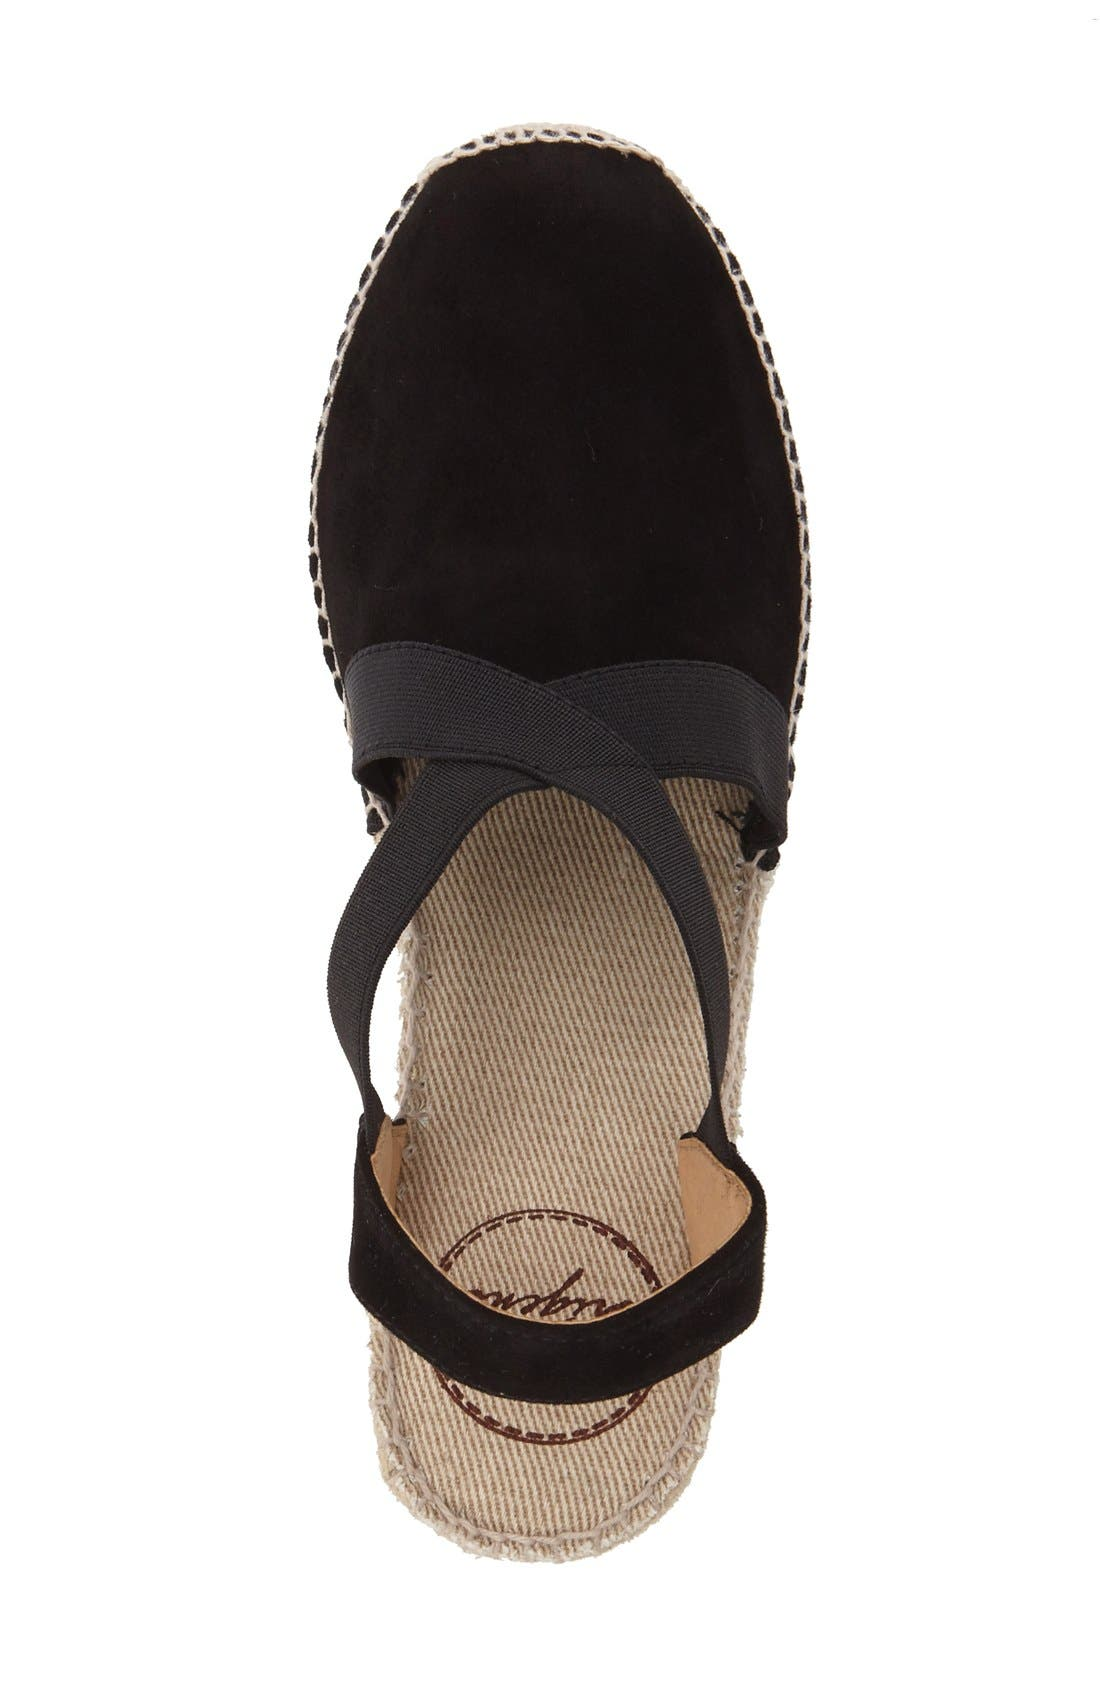 Alternate Image 3  - Toni Pons 'Tona' Espadrille Wedge (Women)